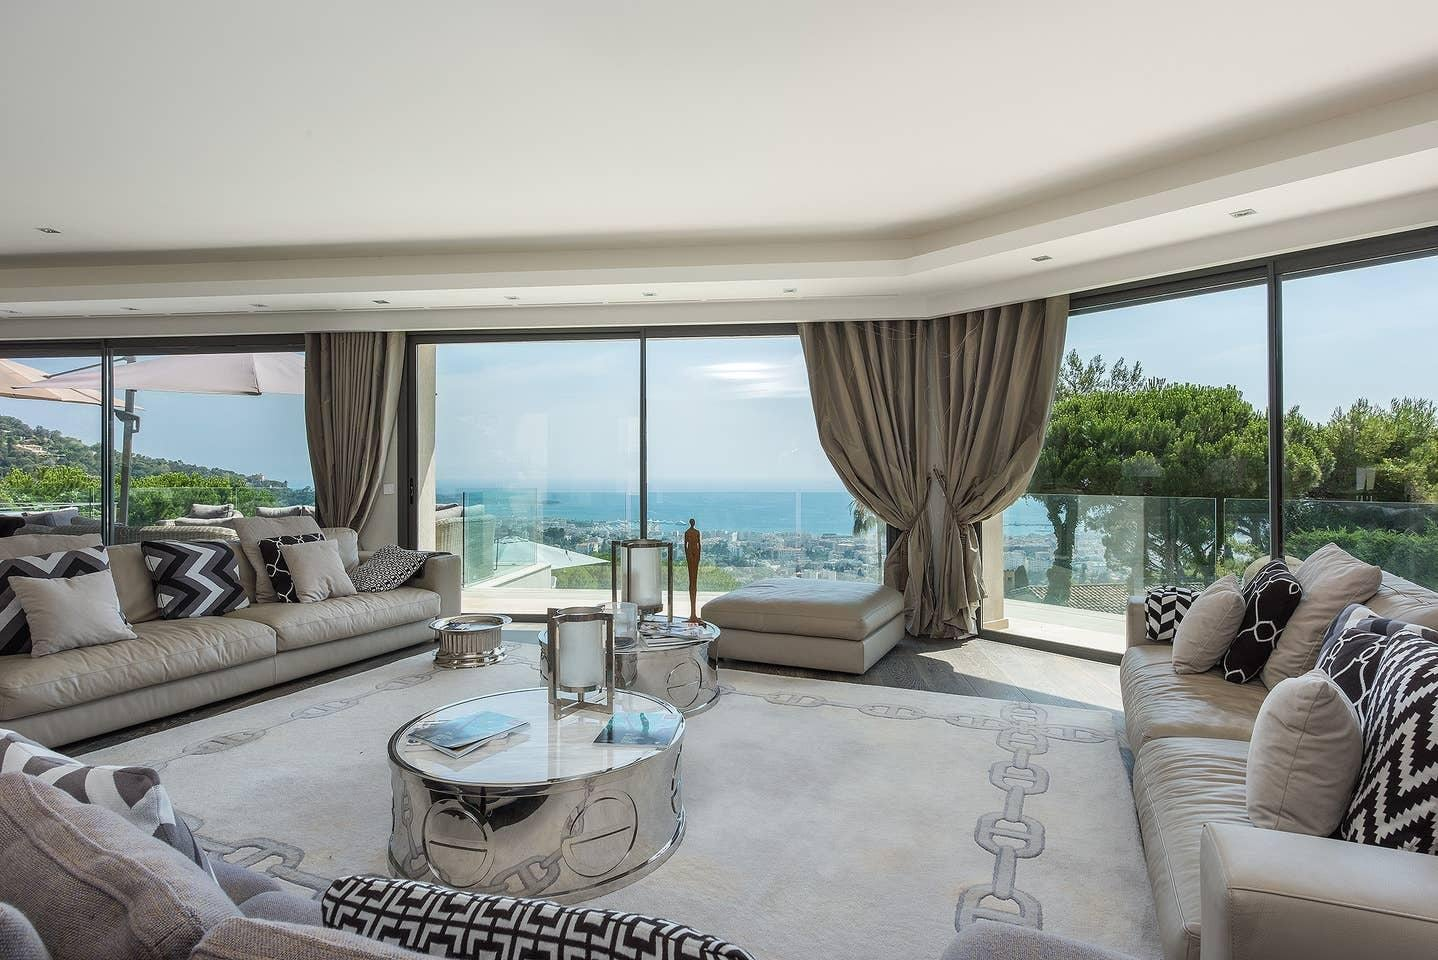 Property Image 2 - Amazing Classic Villa with Panoramic Sea Views